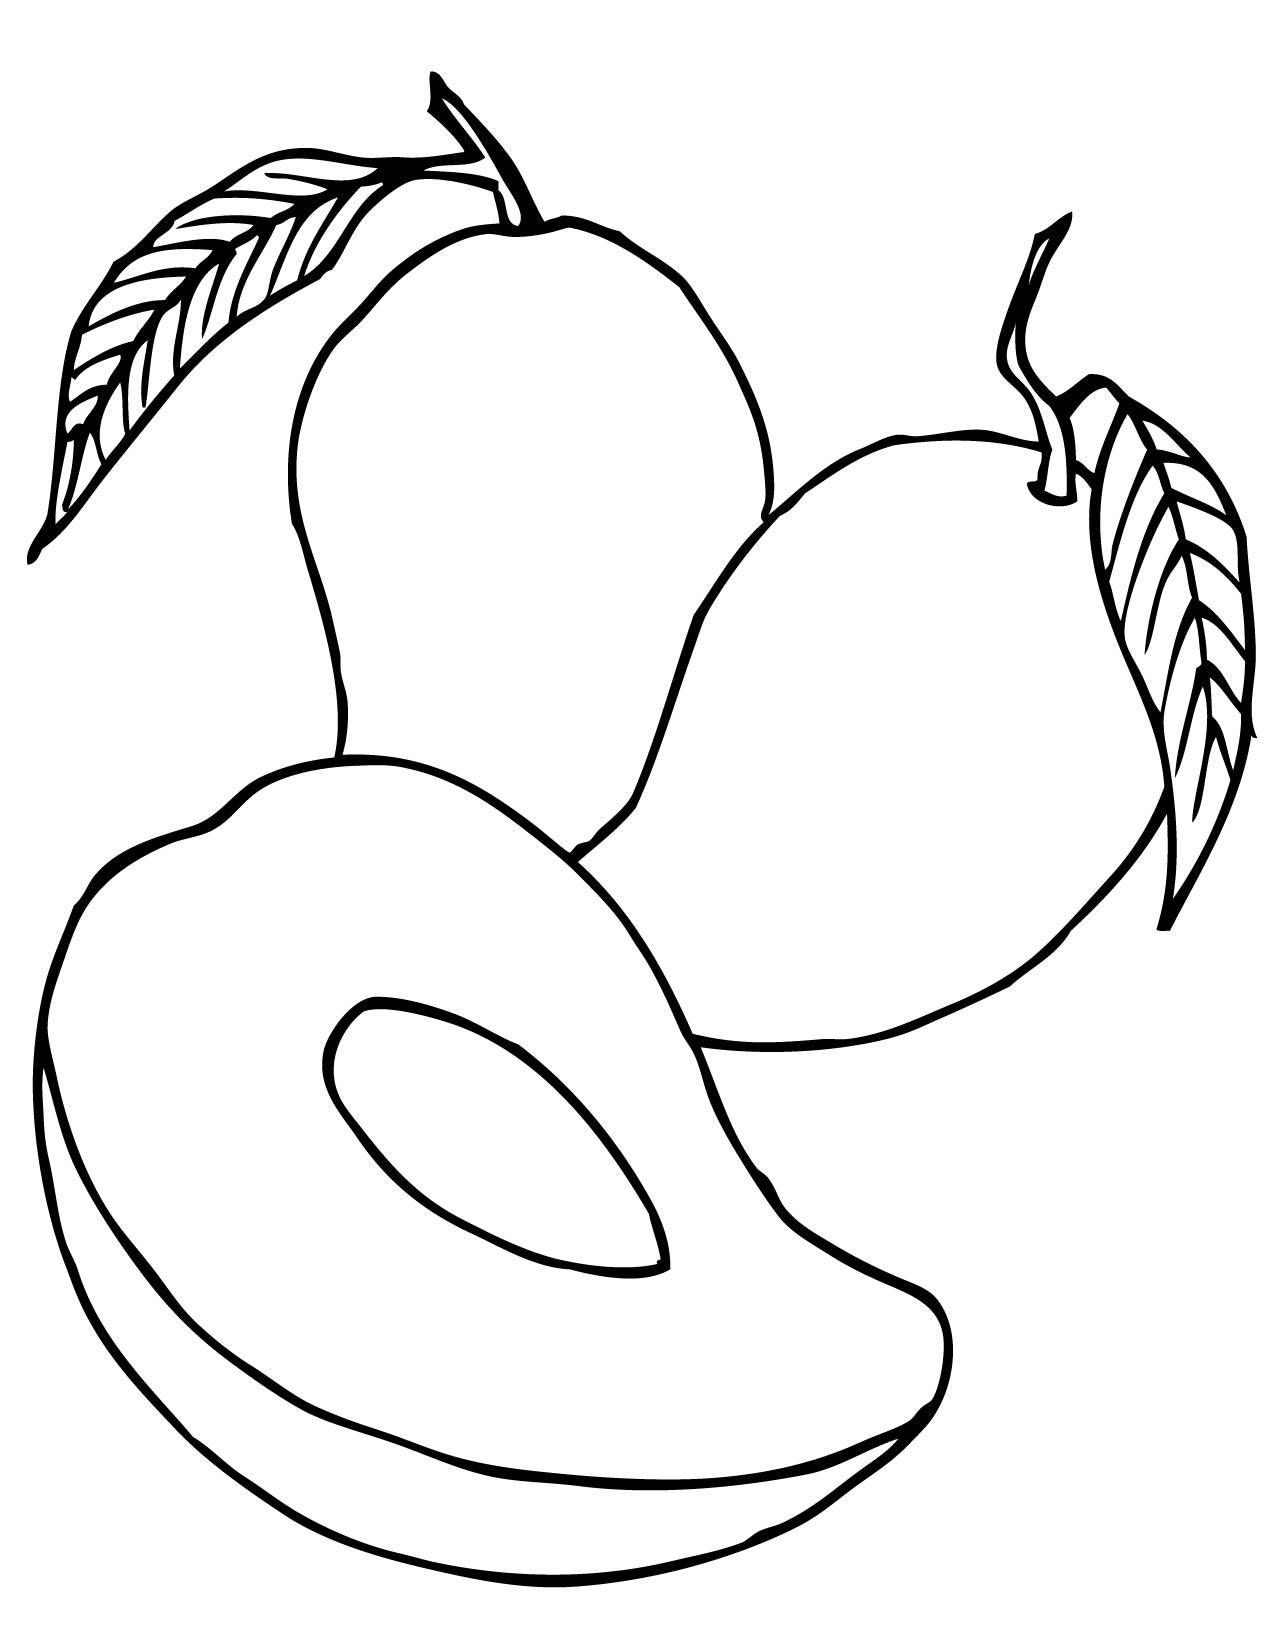 Black And White Fruit Clipart